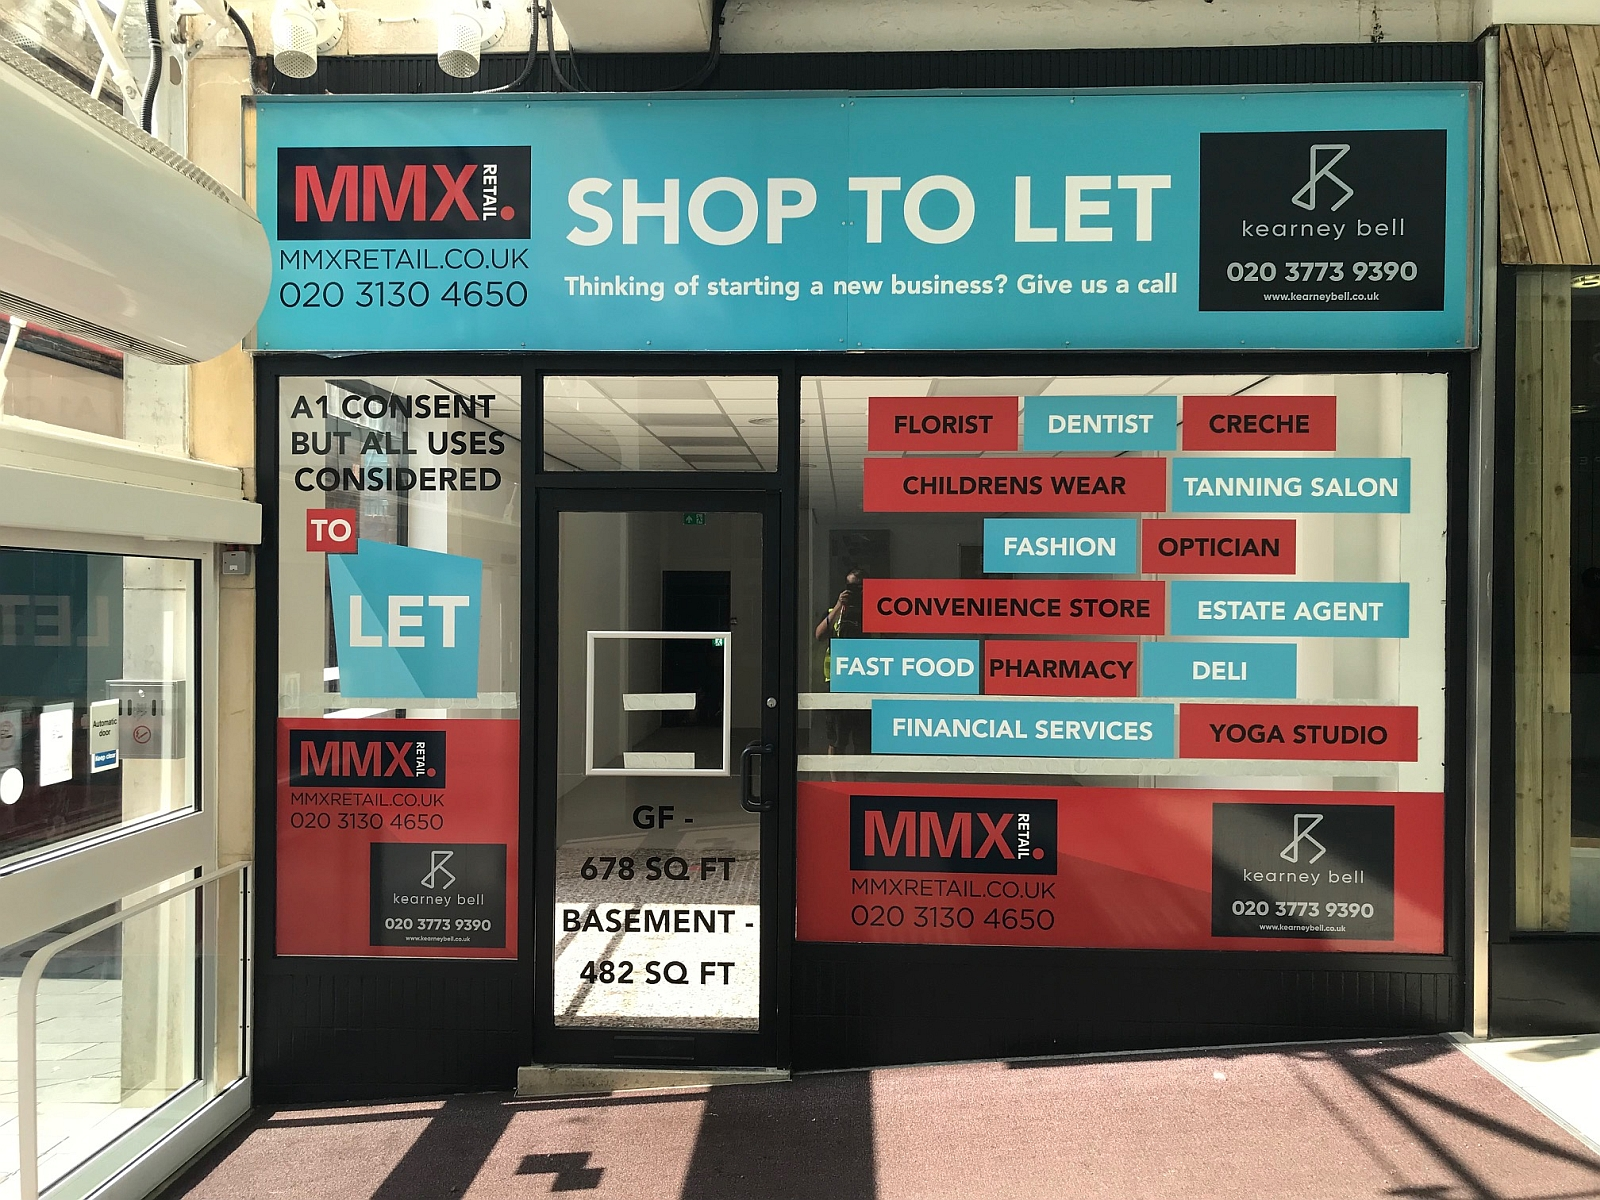 Shop to let - window vinyl